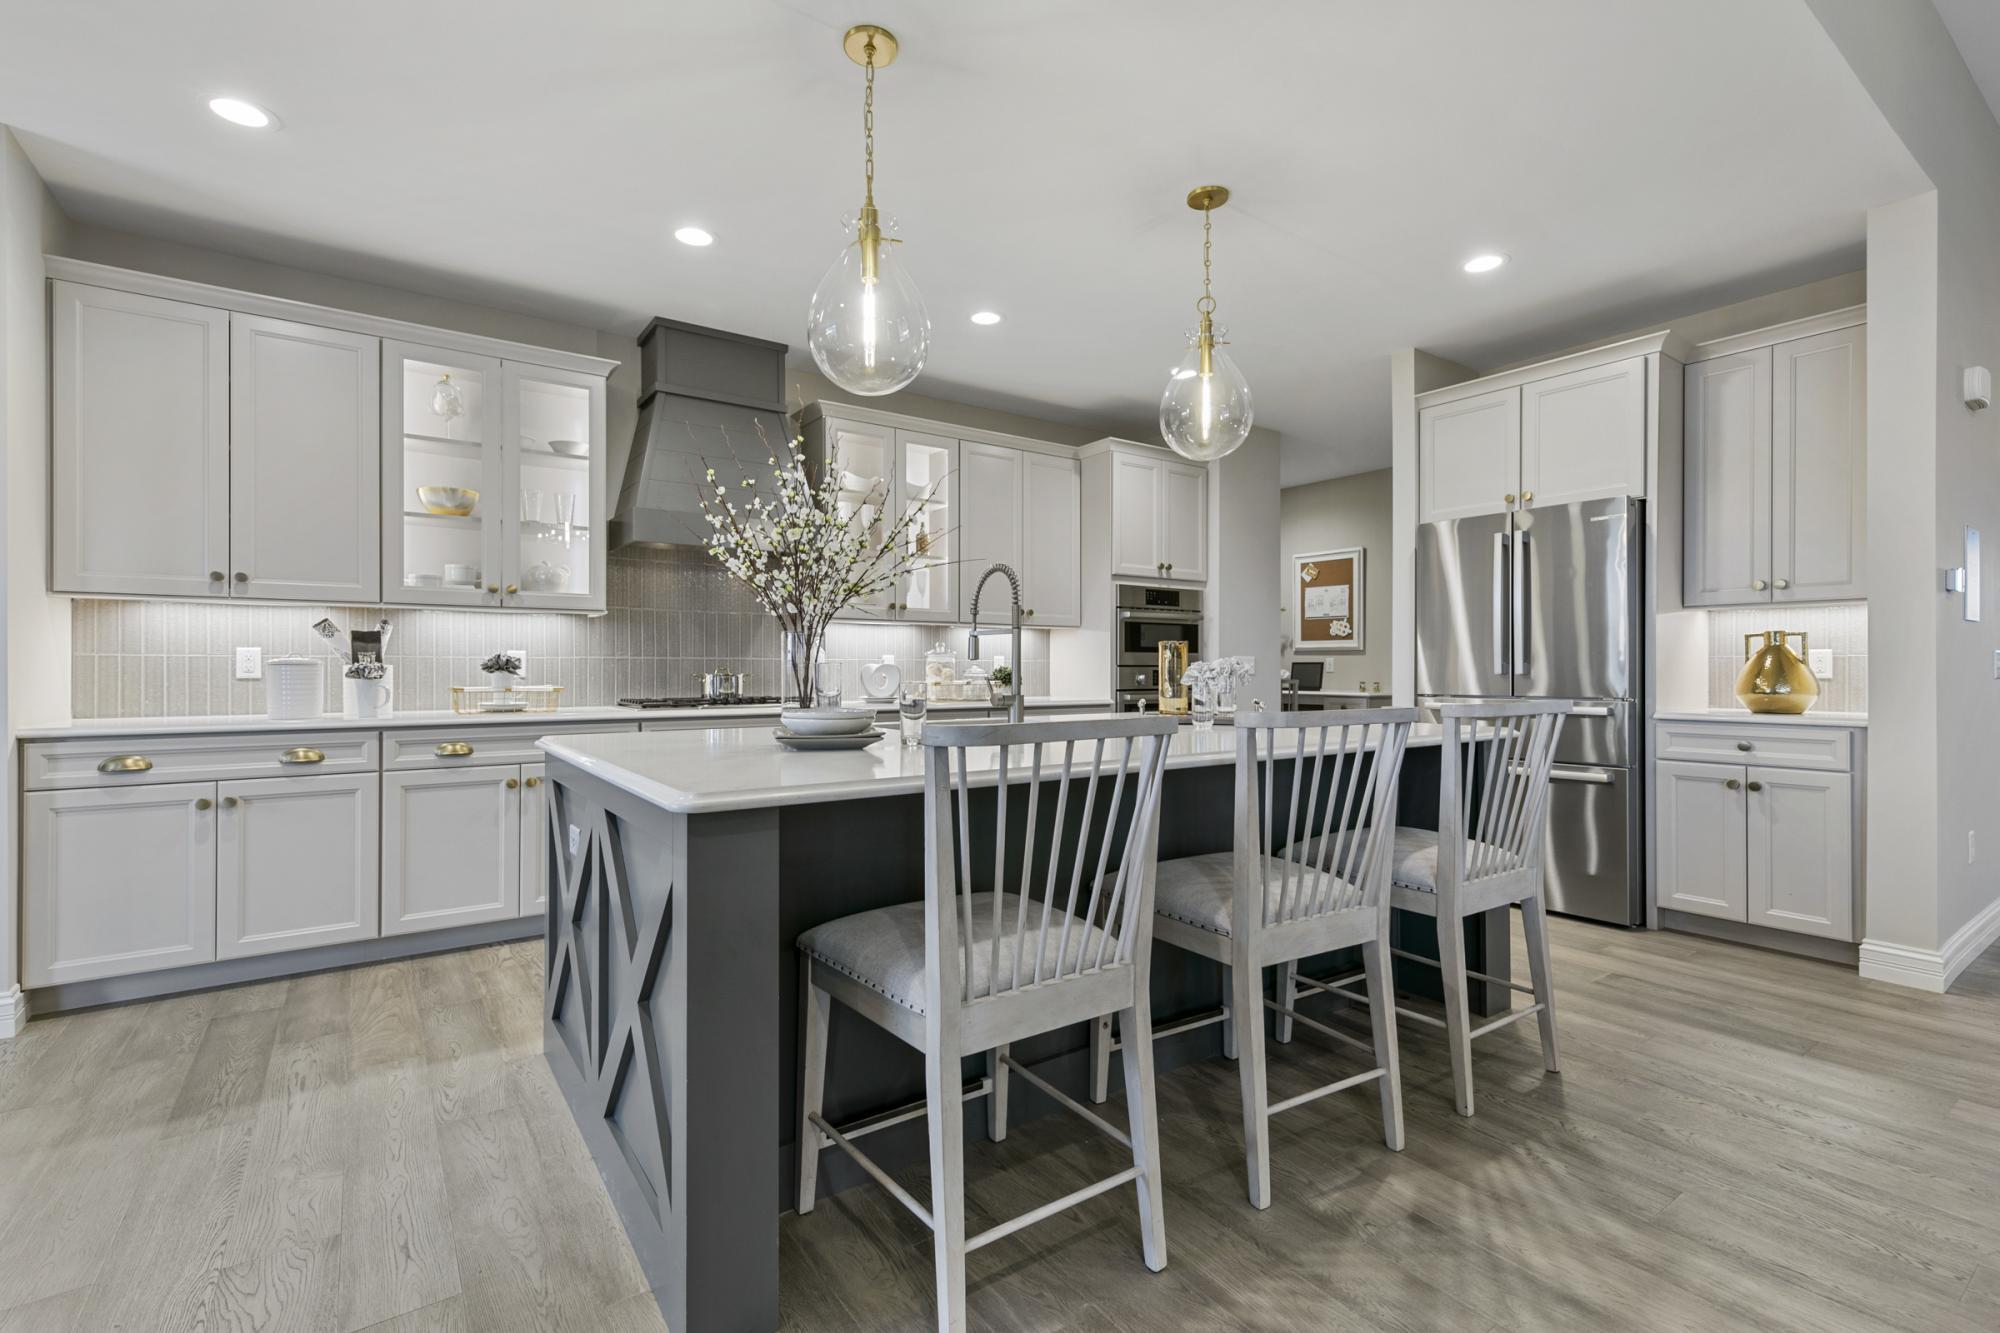 Kitchen featured in the LaSalle By McKelvey Homes in St. Louis, MO